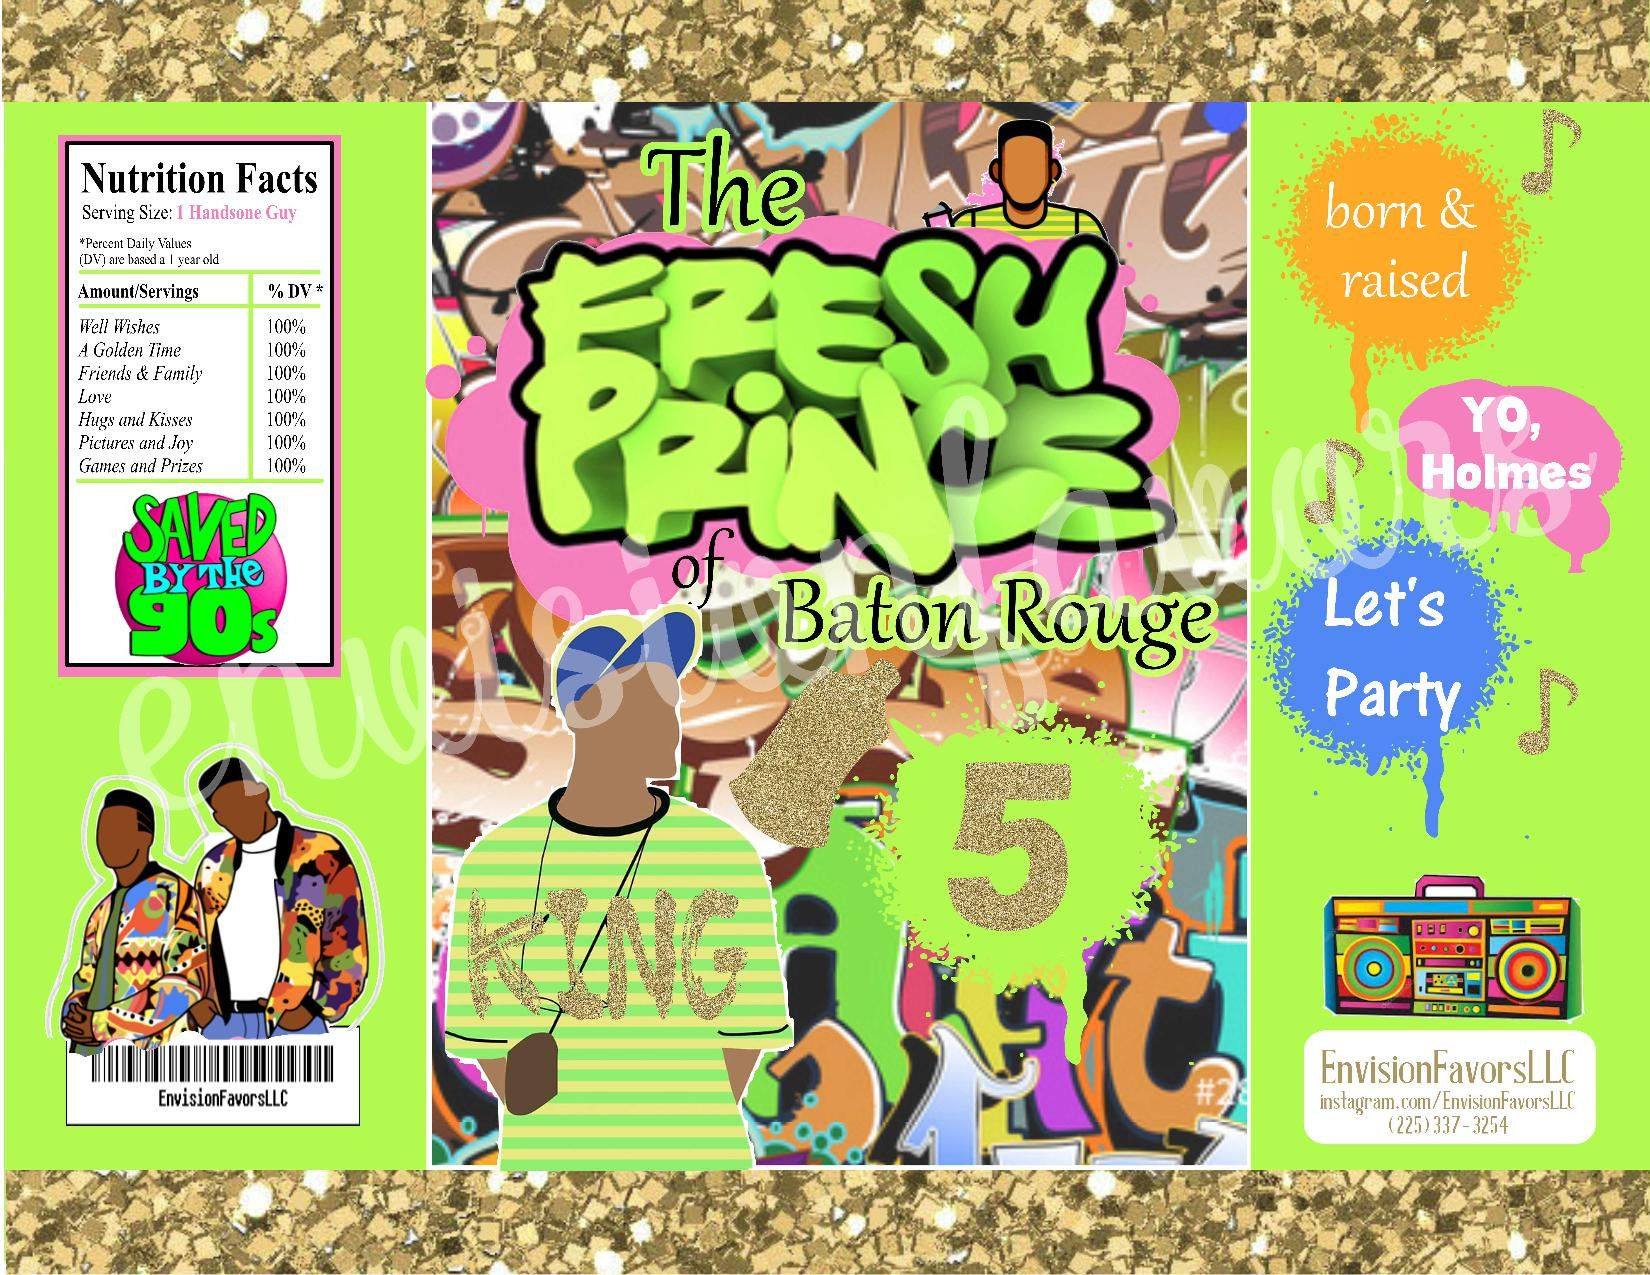 Fresh Prince 90s hip hop chip Bags|Birthday|Custom Party